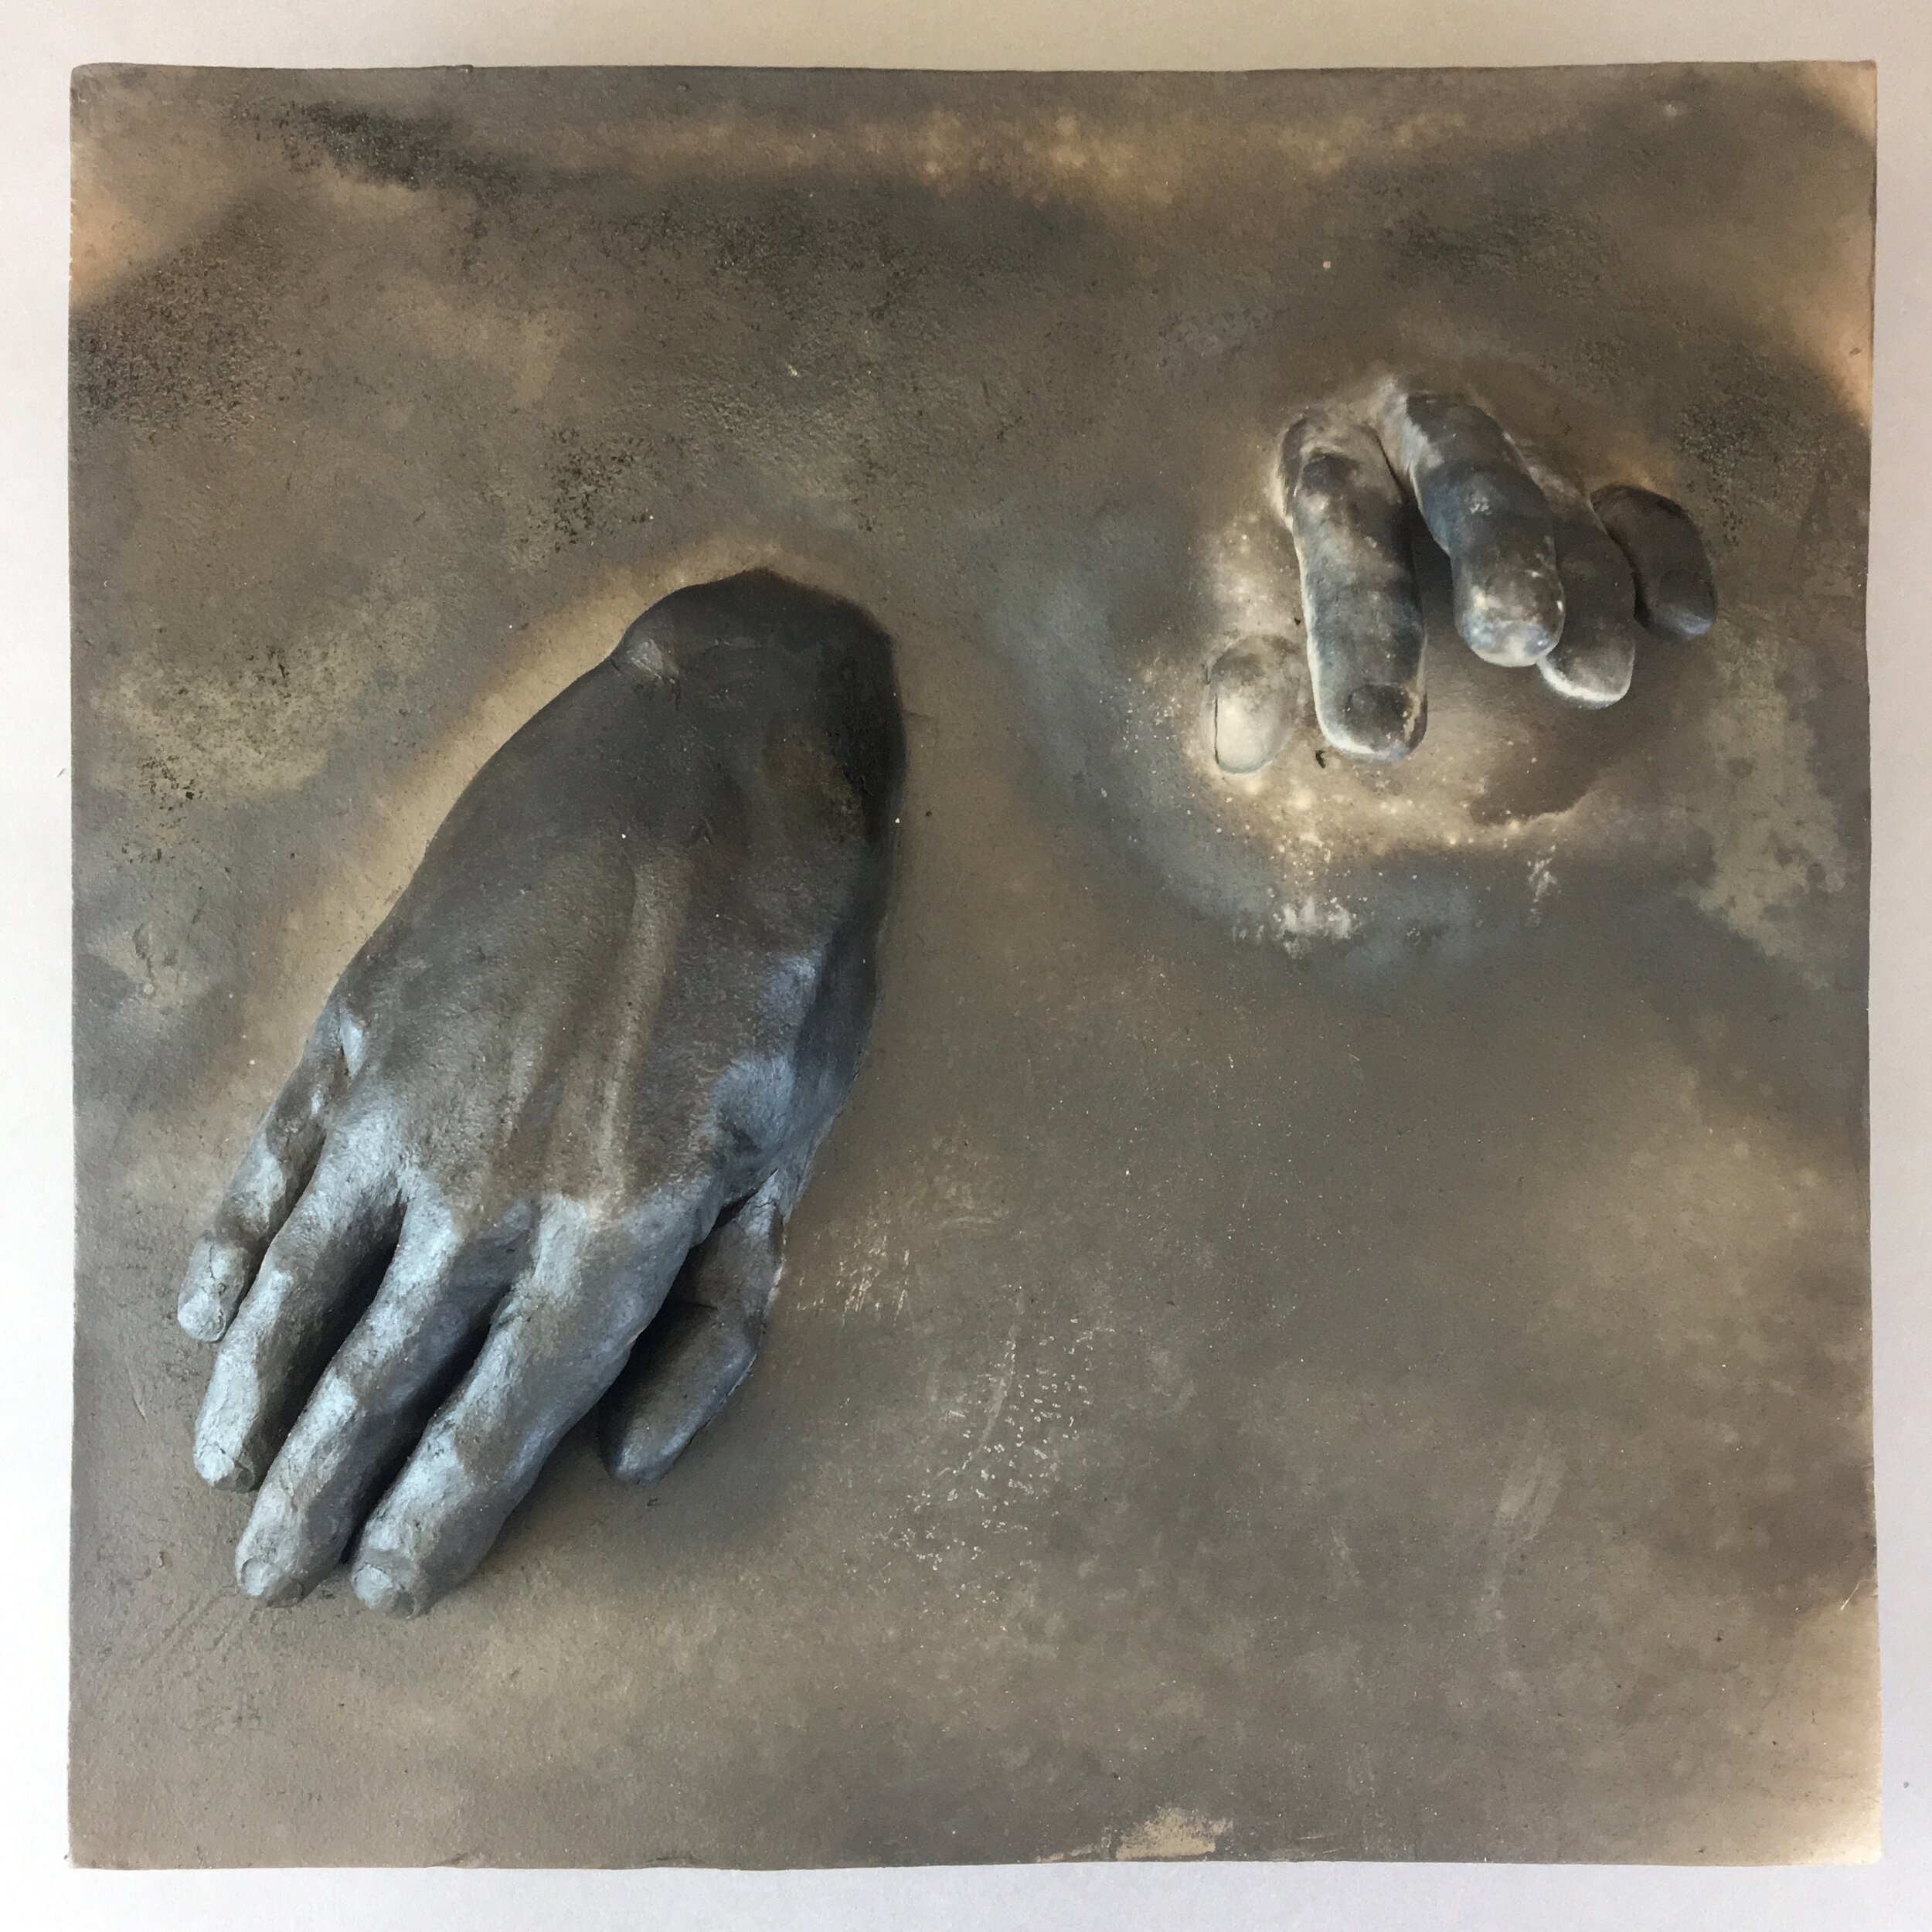 """Becoming  (panel 8 of 15)   Pit-fired ceramic on birch mounts  11.5"""" x 11.5"""" x variable thickness  Relief panels: $400 each  Flat panels: $75 each  Complete set: $4500  Click image to enlarge ⦿  Inquire"""